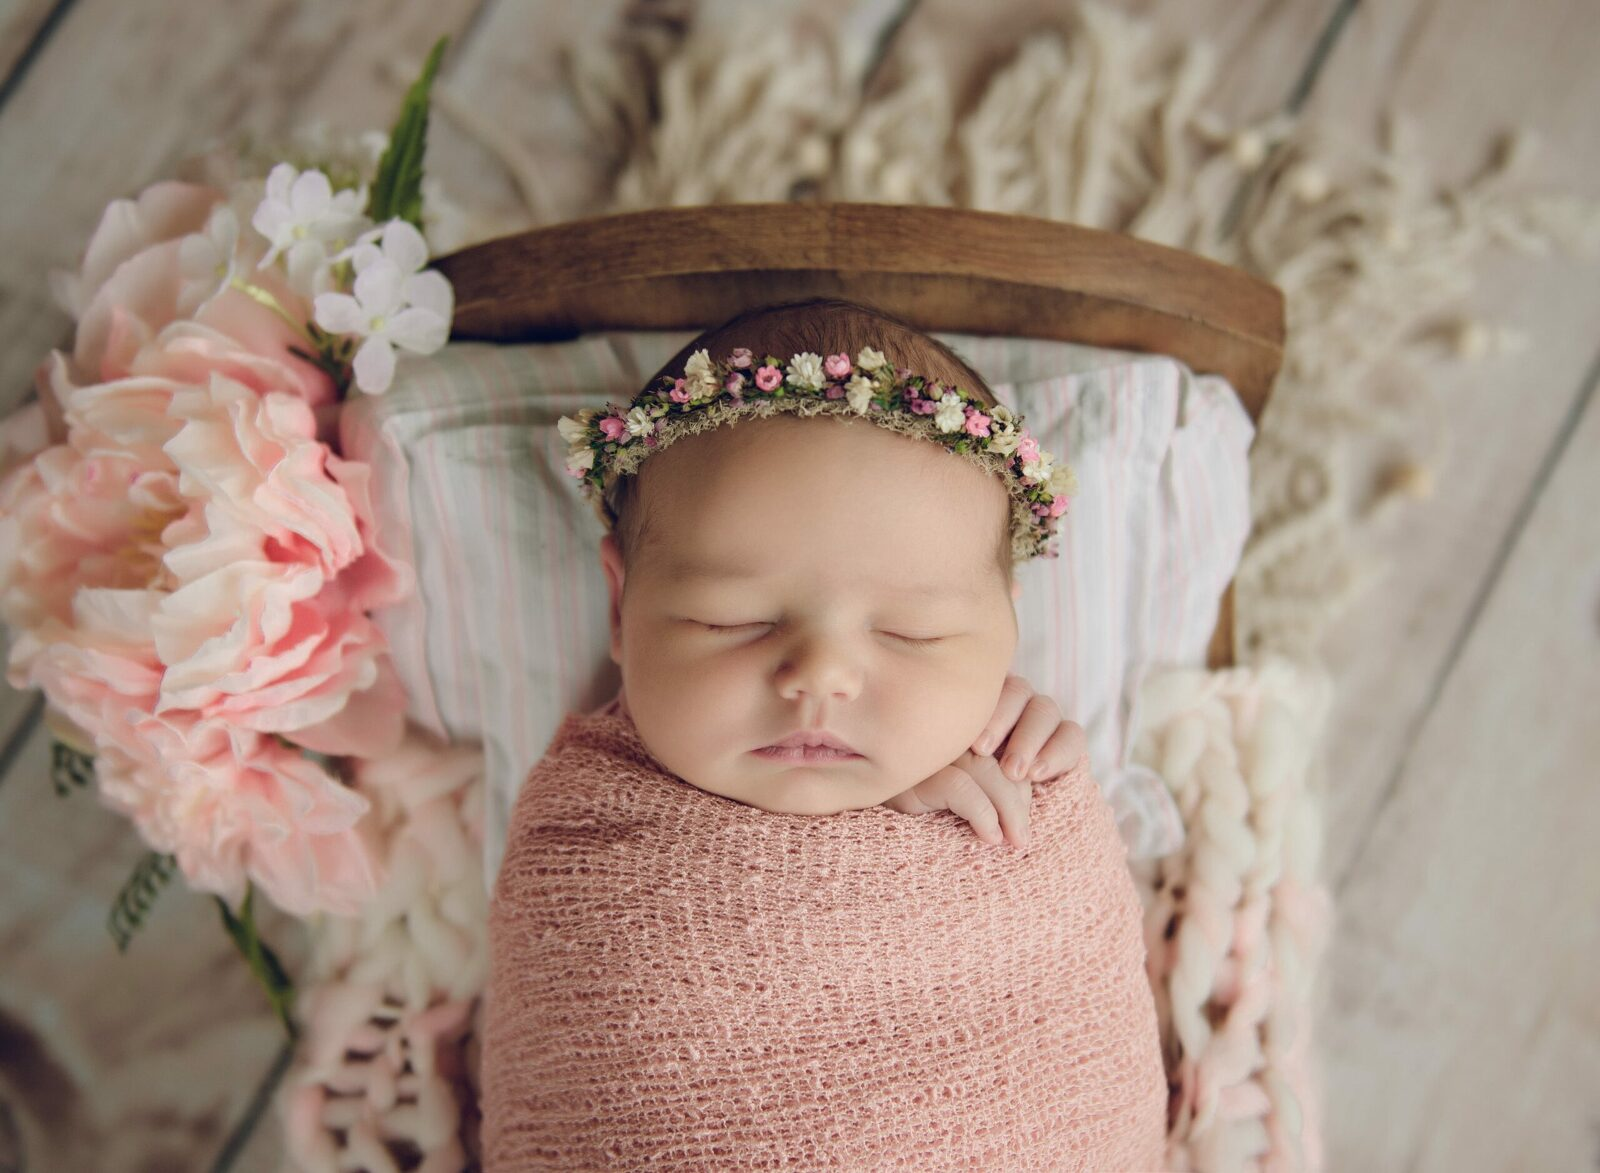 newborn baby girl in a wooden crib wearing a pink floral halo